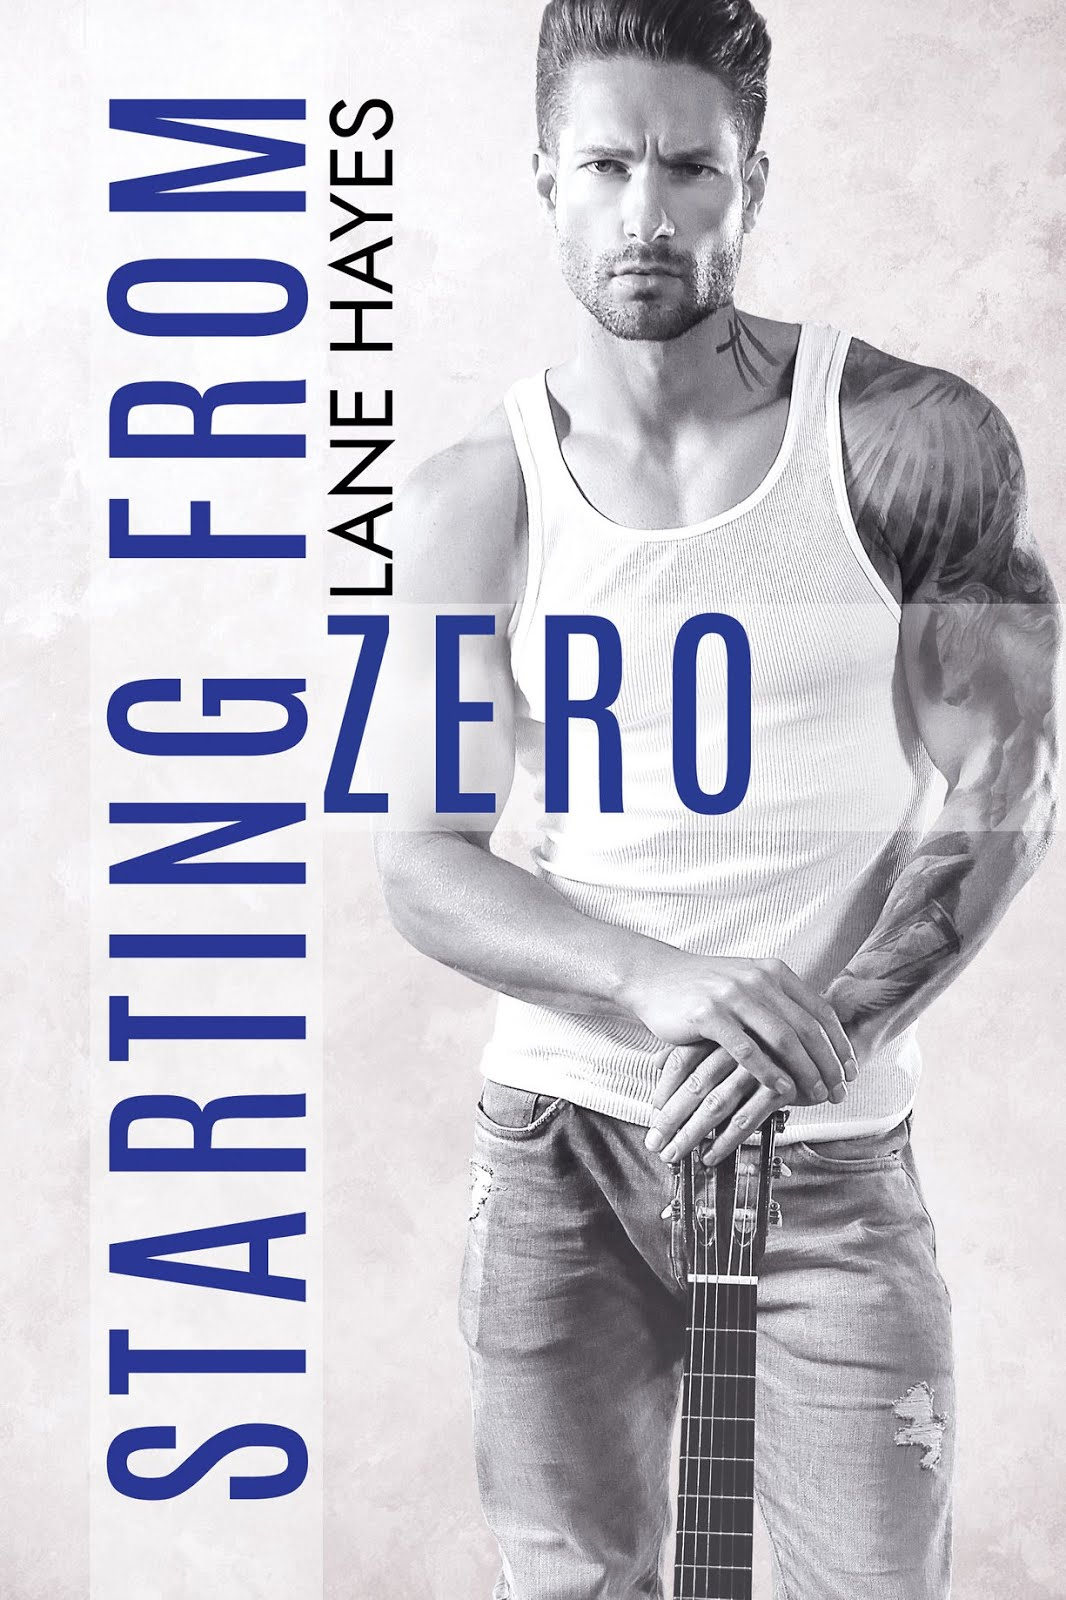 Starting From Zero by Lane Hayes